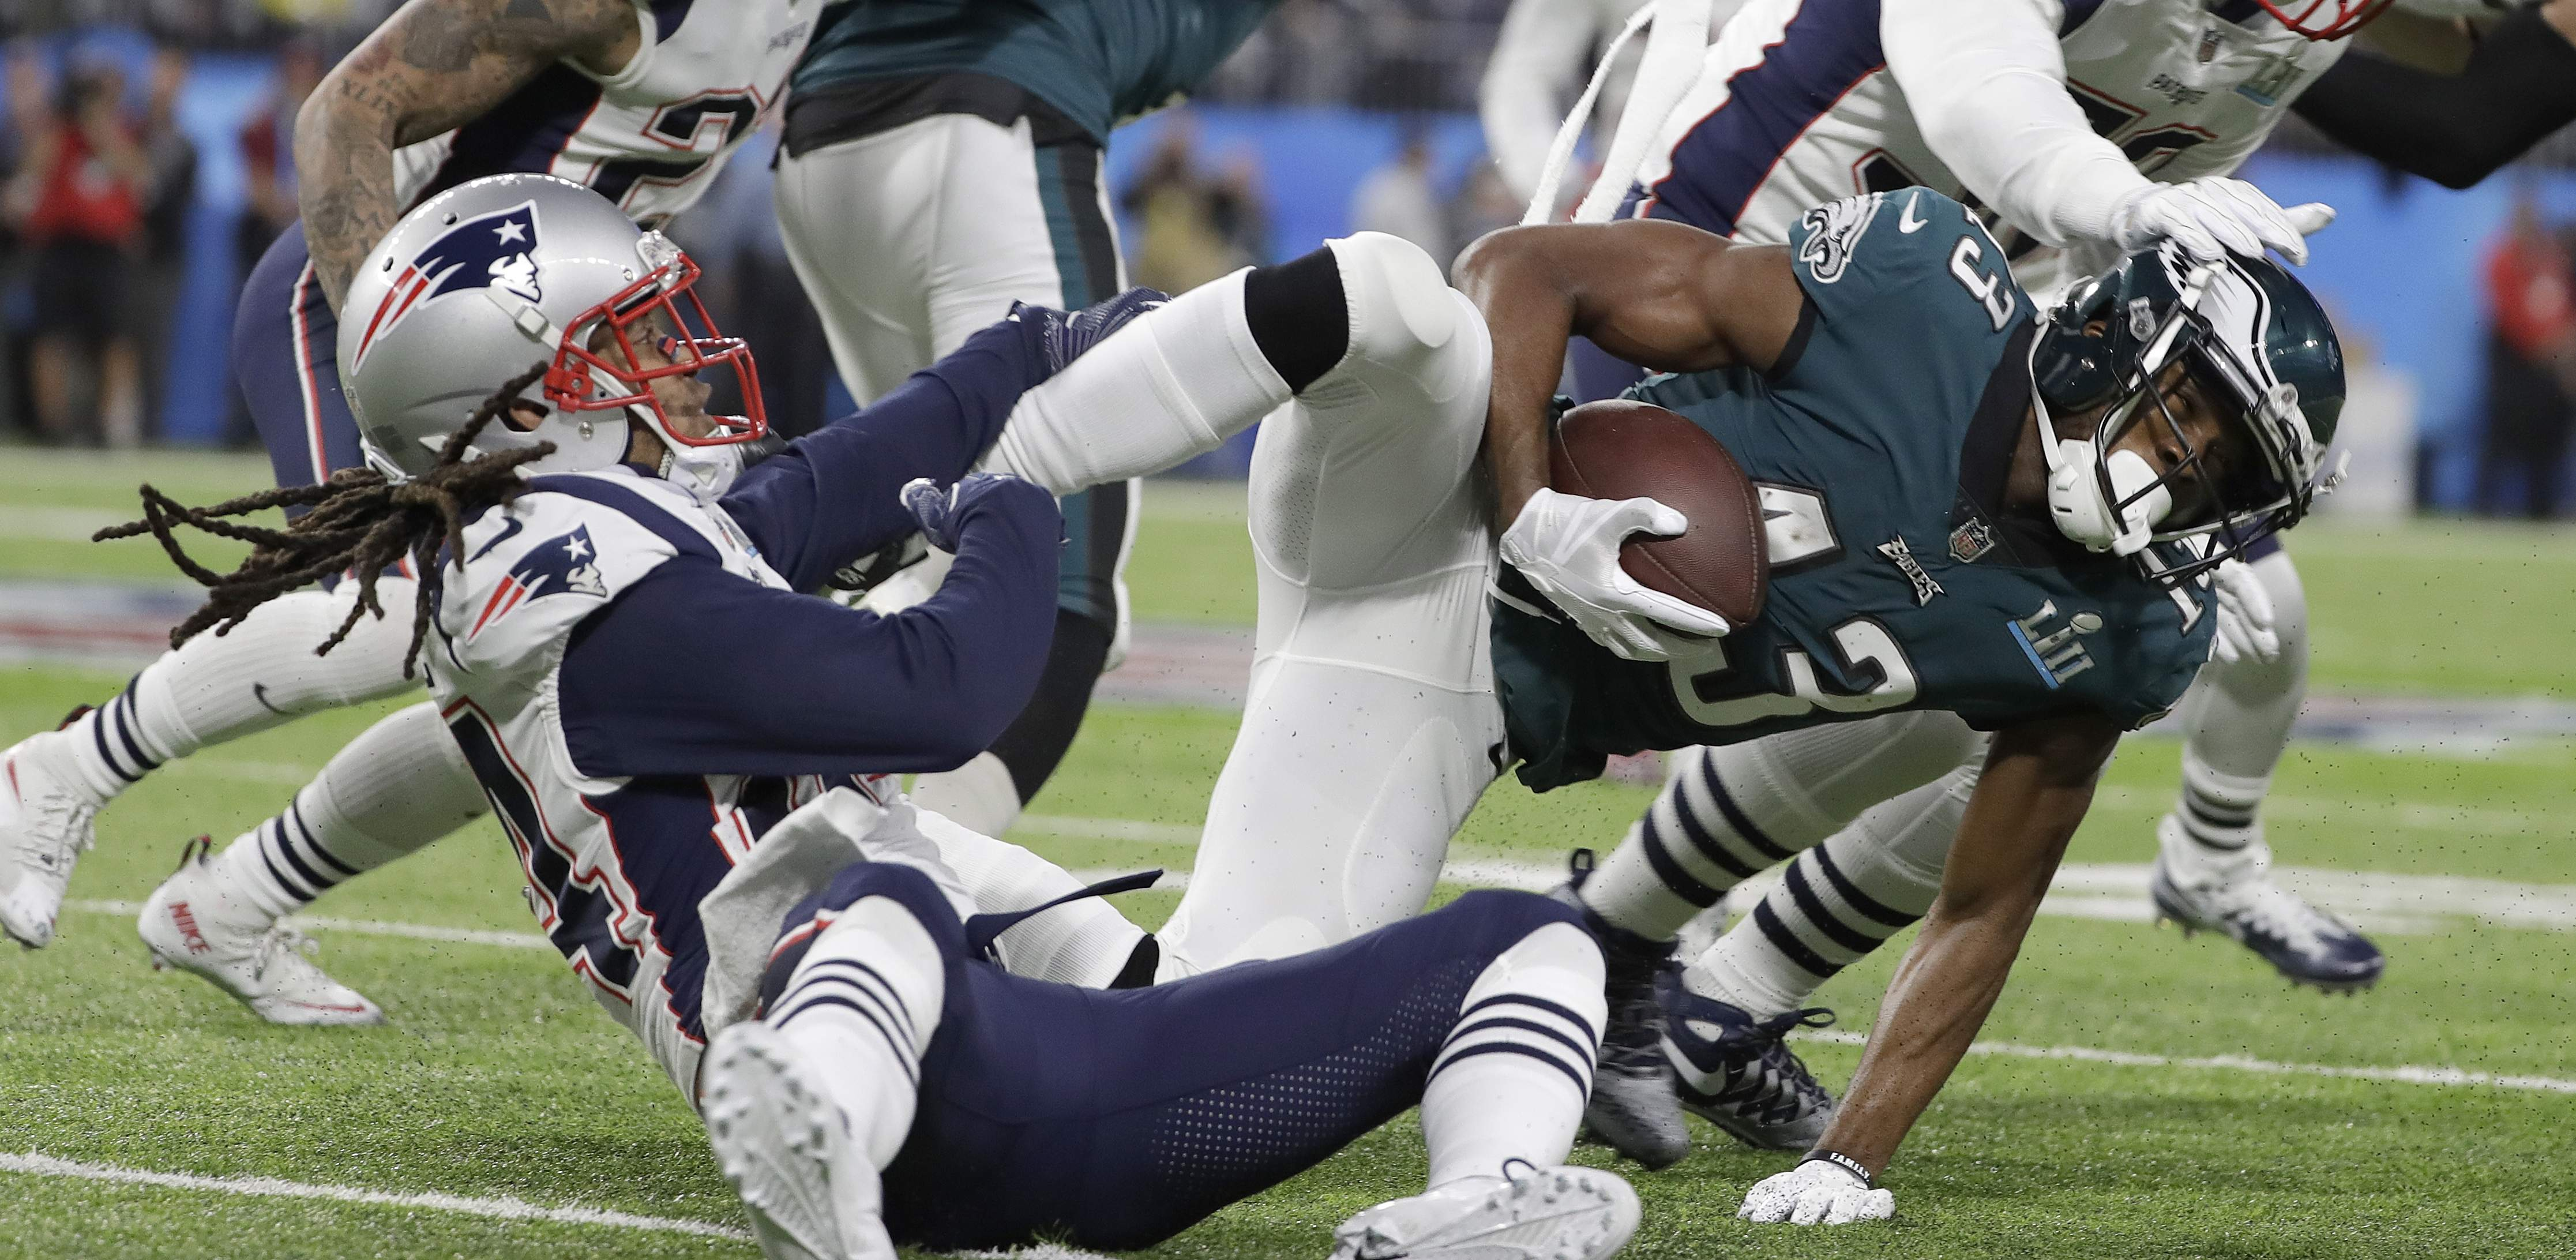 Philadelphia Eagles' Nelson Agholor, right, is stopped after catching a pass during the first half of the NFL Super Bowl 52 football game against the New England Patriots Sunday, Feb. 4, 2018, in Minneapolis. (AP Photo/Matt Slocum)